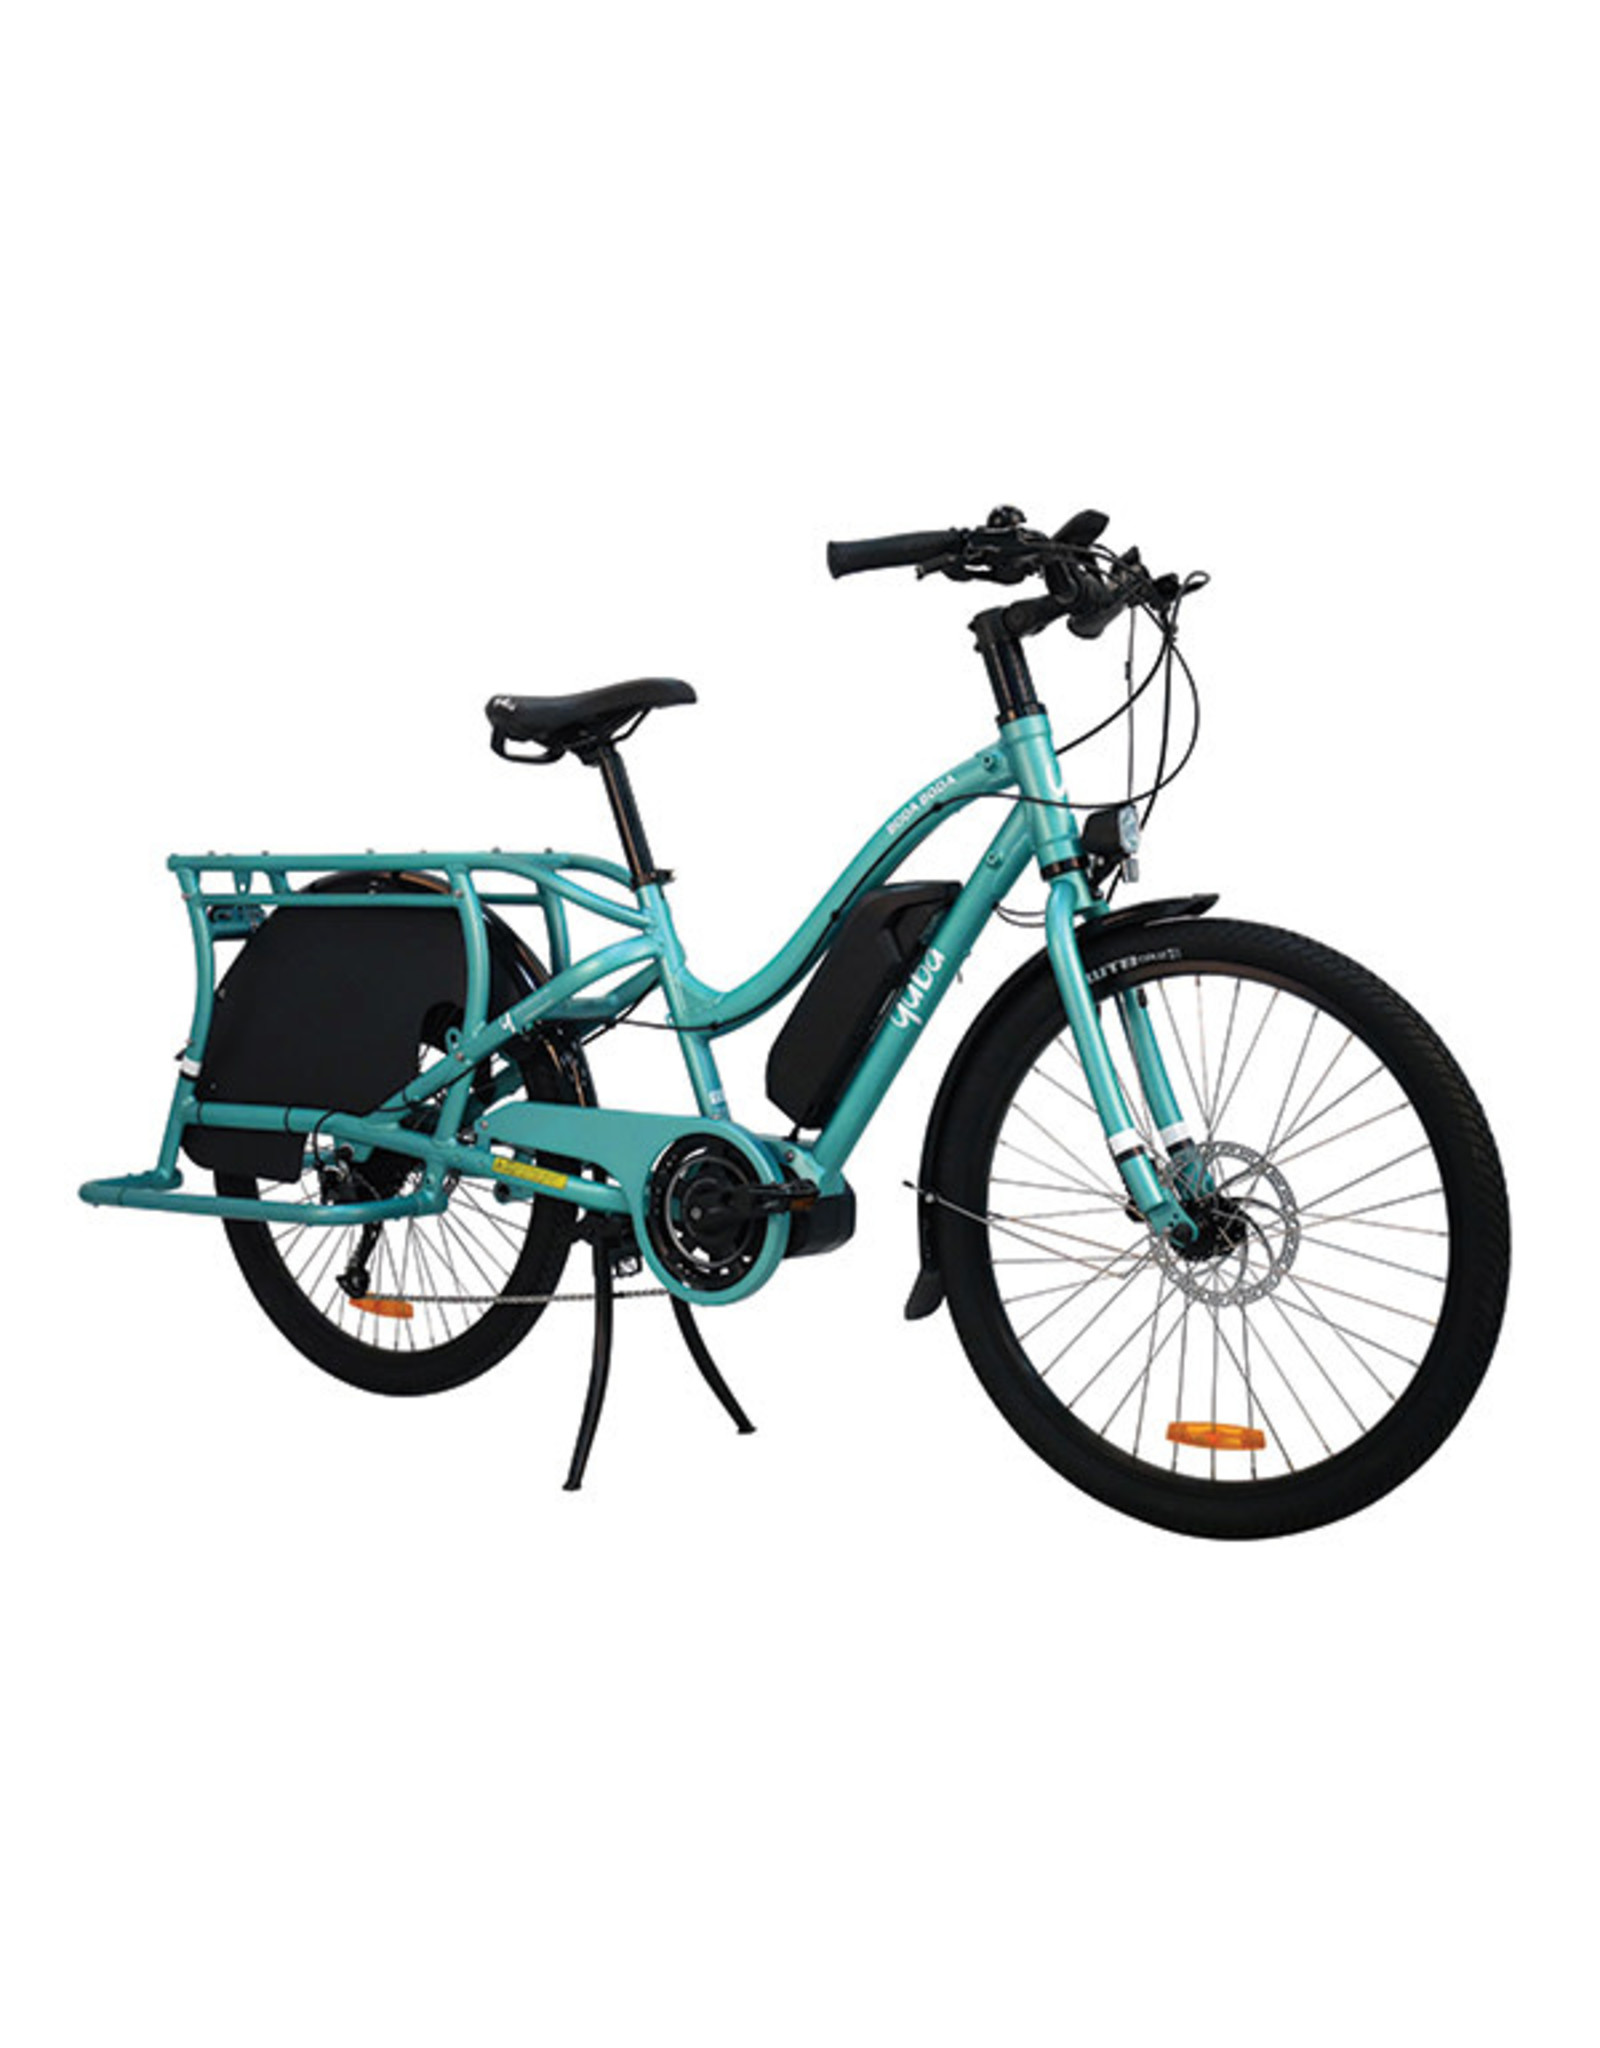 YUBA YUBA Electric Boda Shimano ST Aqua E6100 ELECTRIC CARGO BIKE